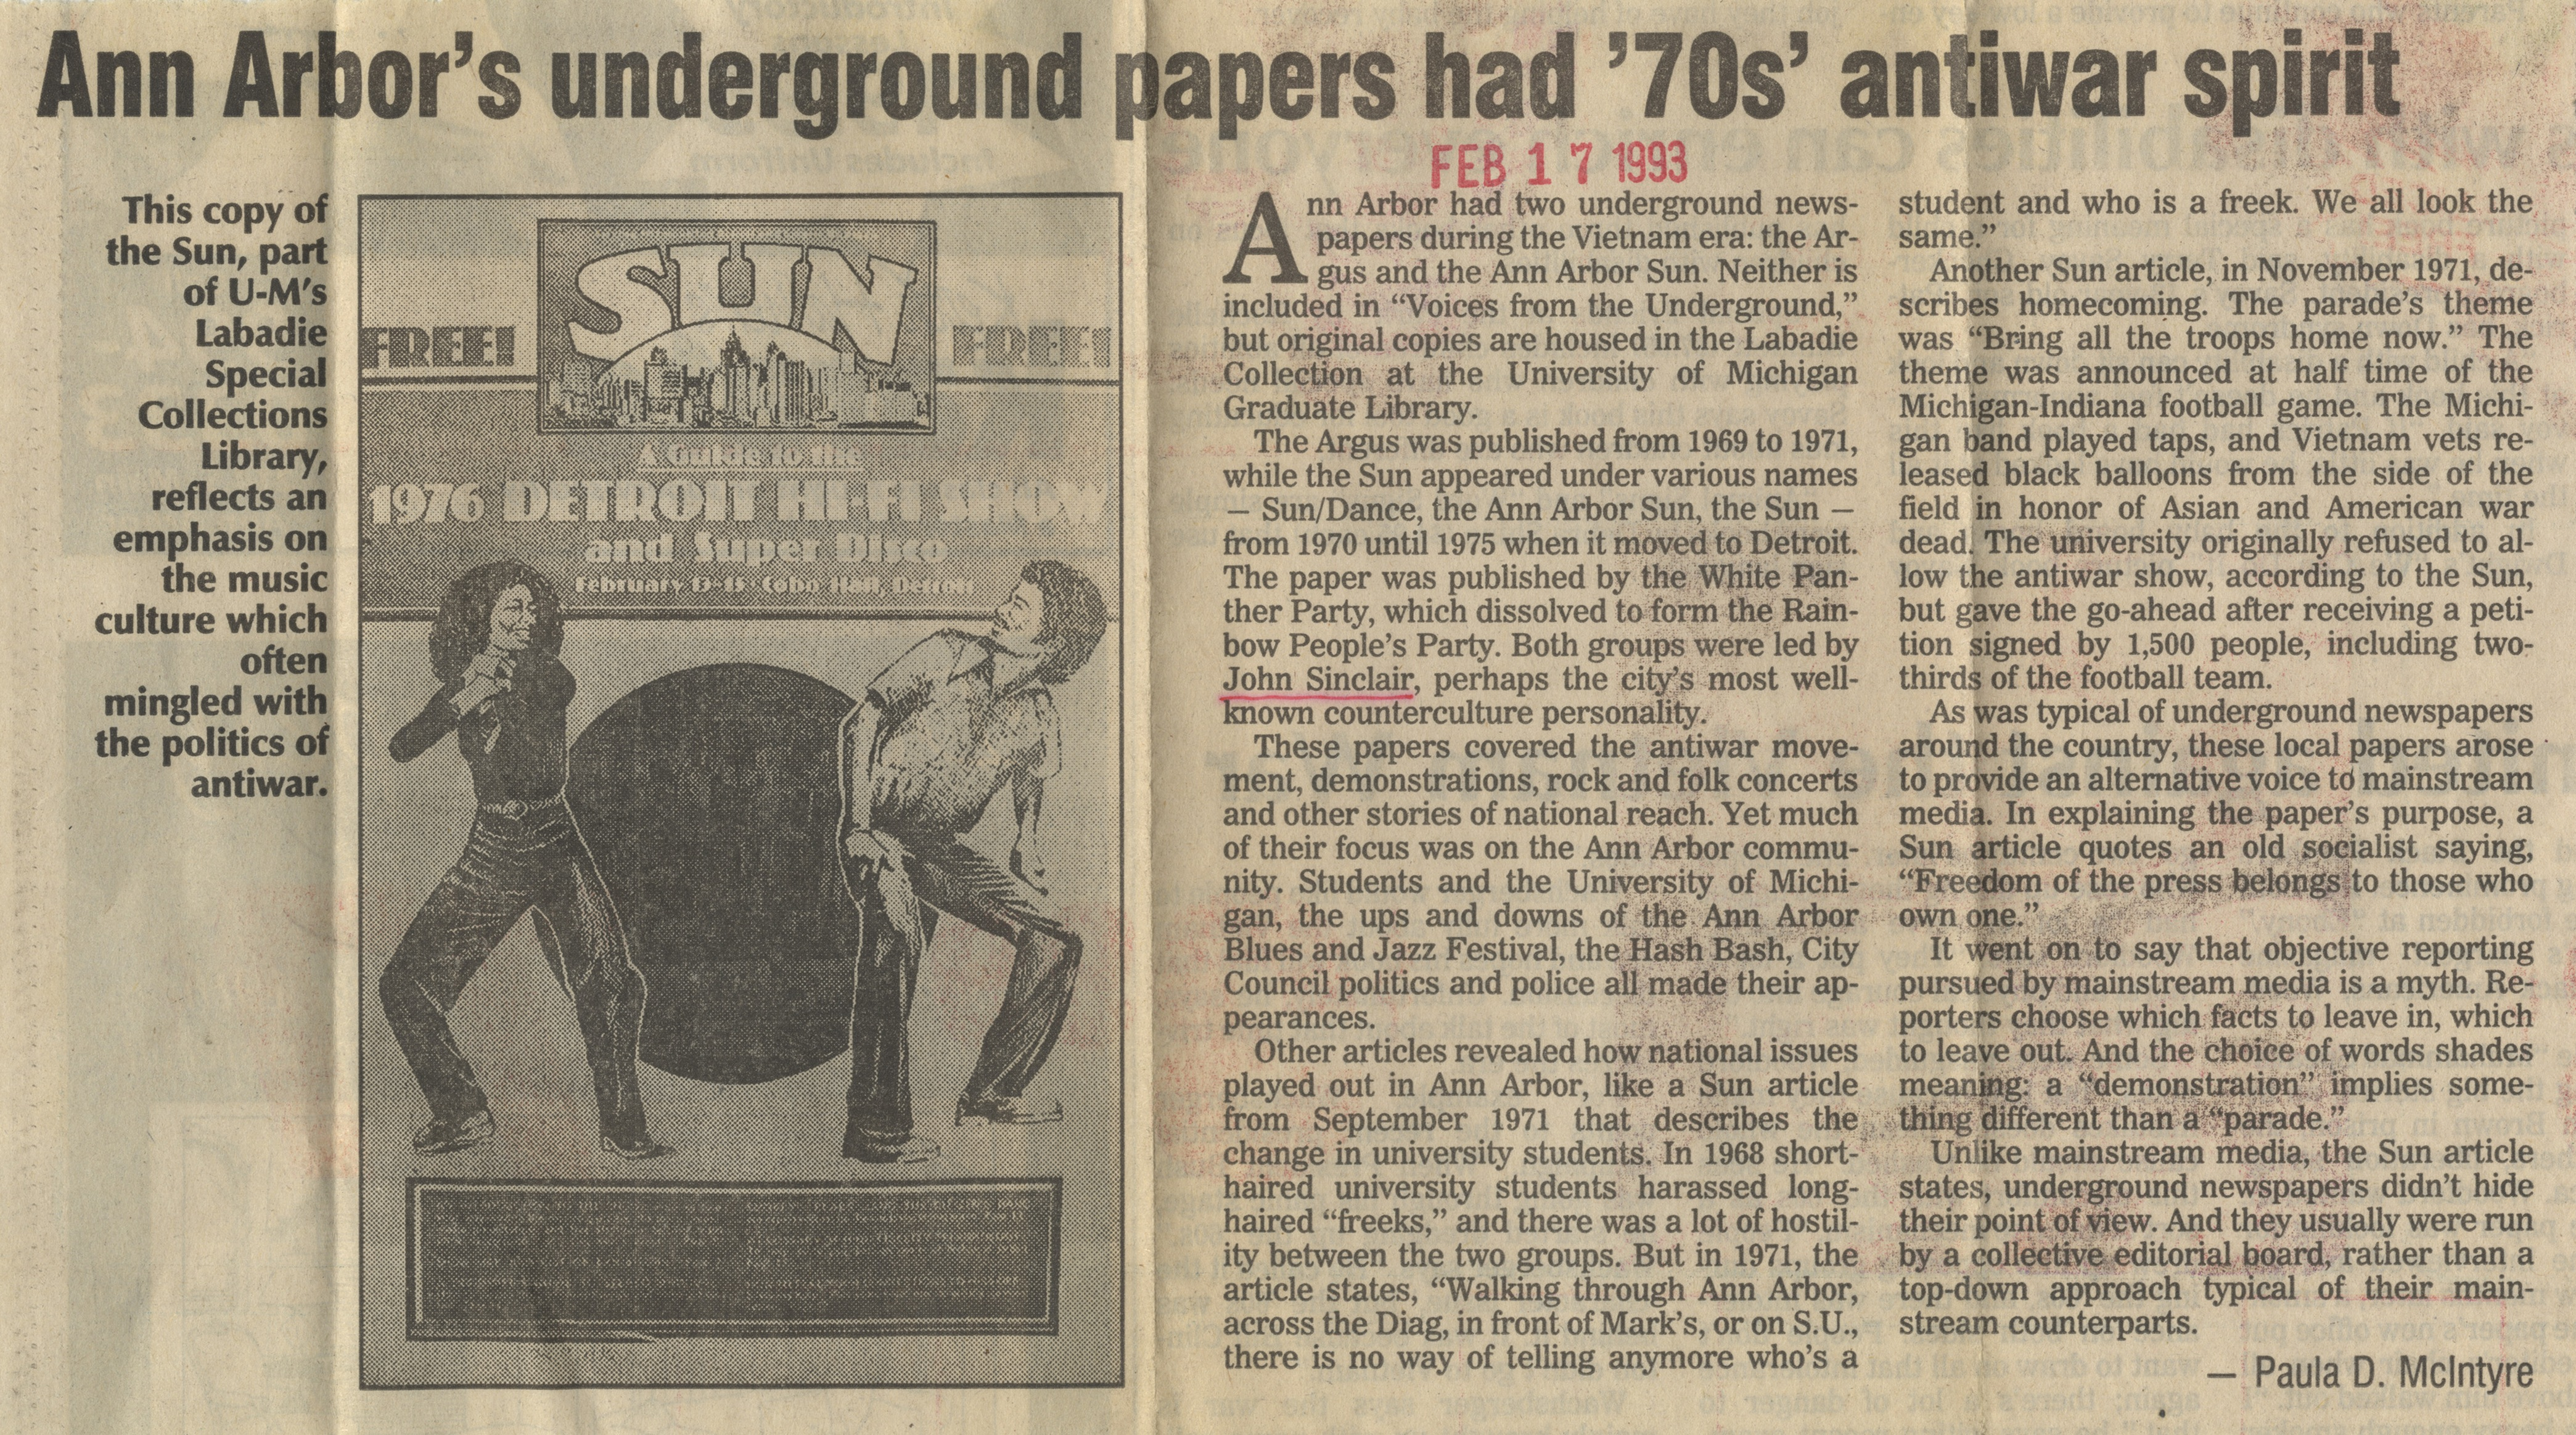 Ann Arbor's Underground Papers Had '70s' Antiwar Spirit image